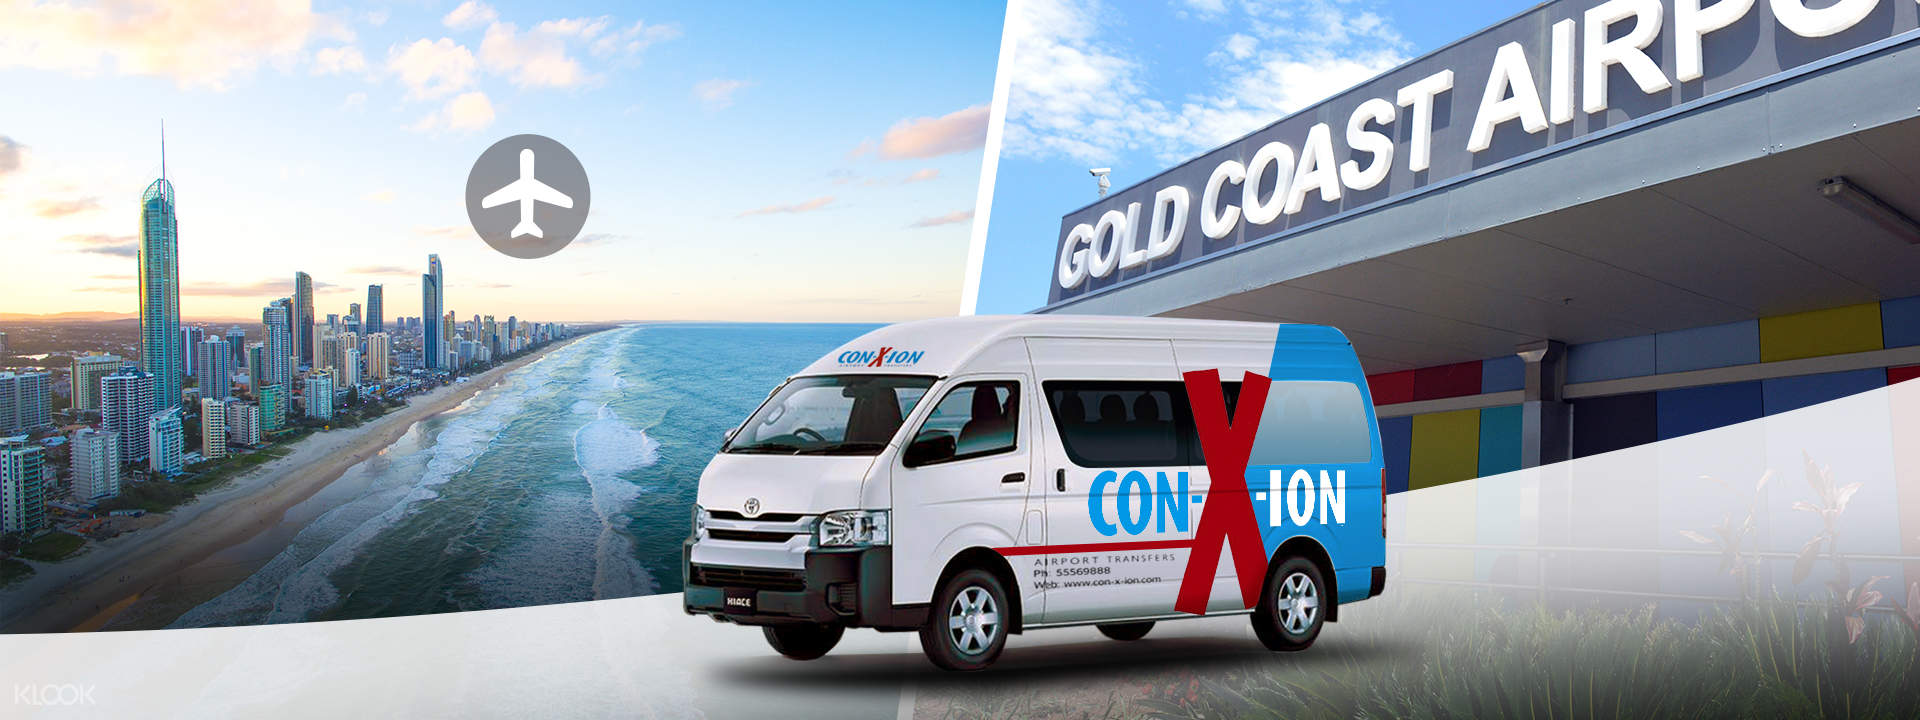 Gold Coast Airport Transfer (OOL) for Gold Coast